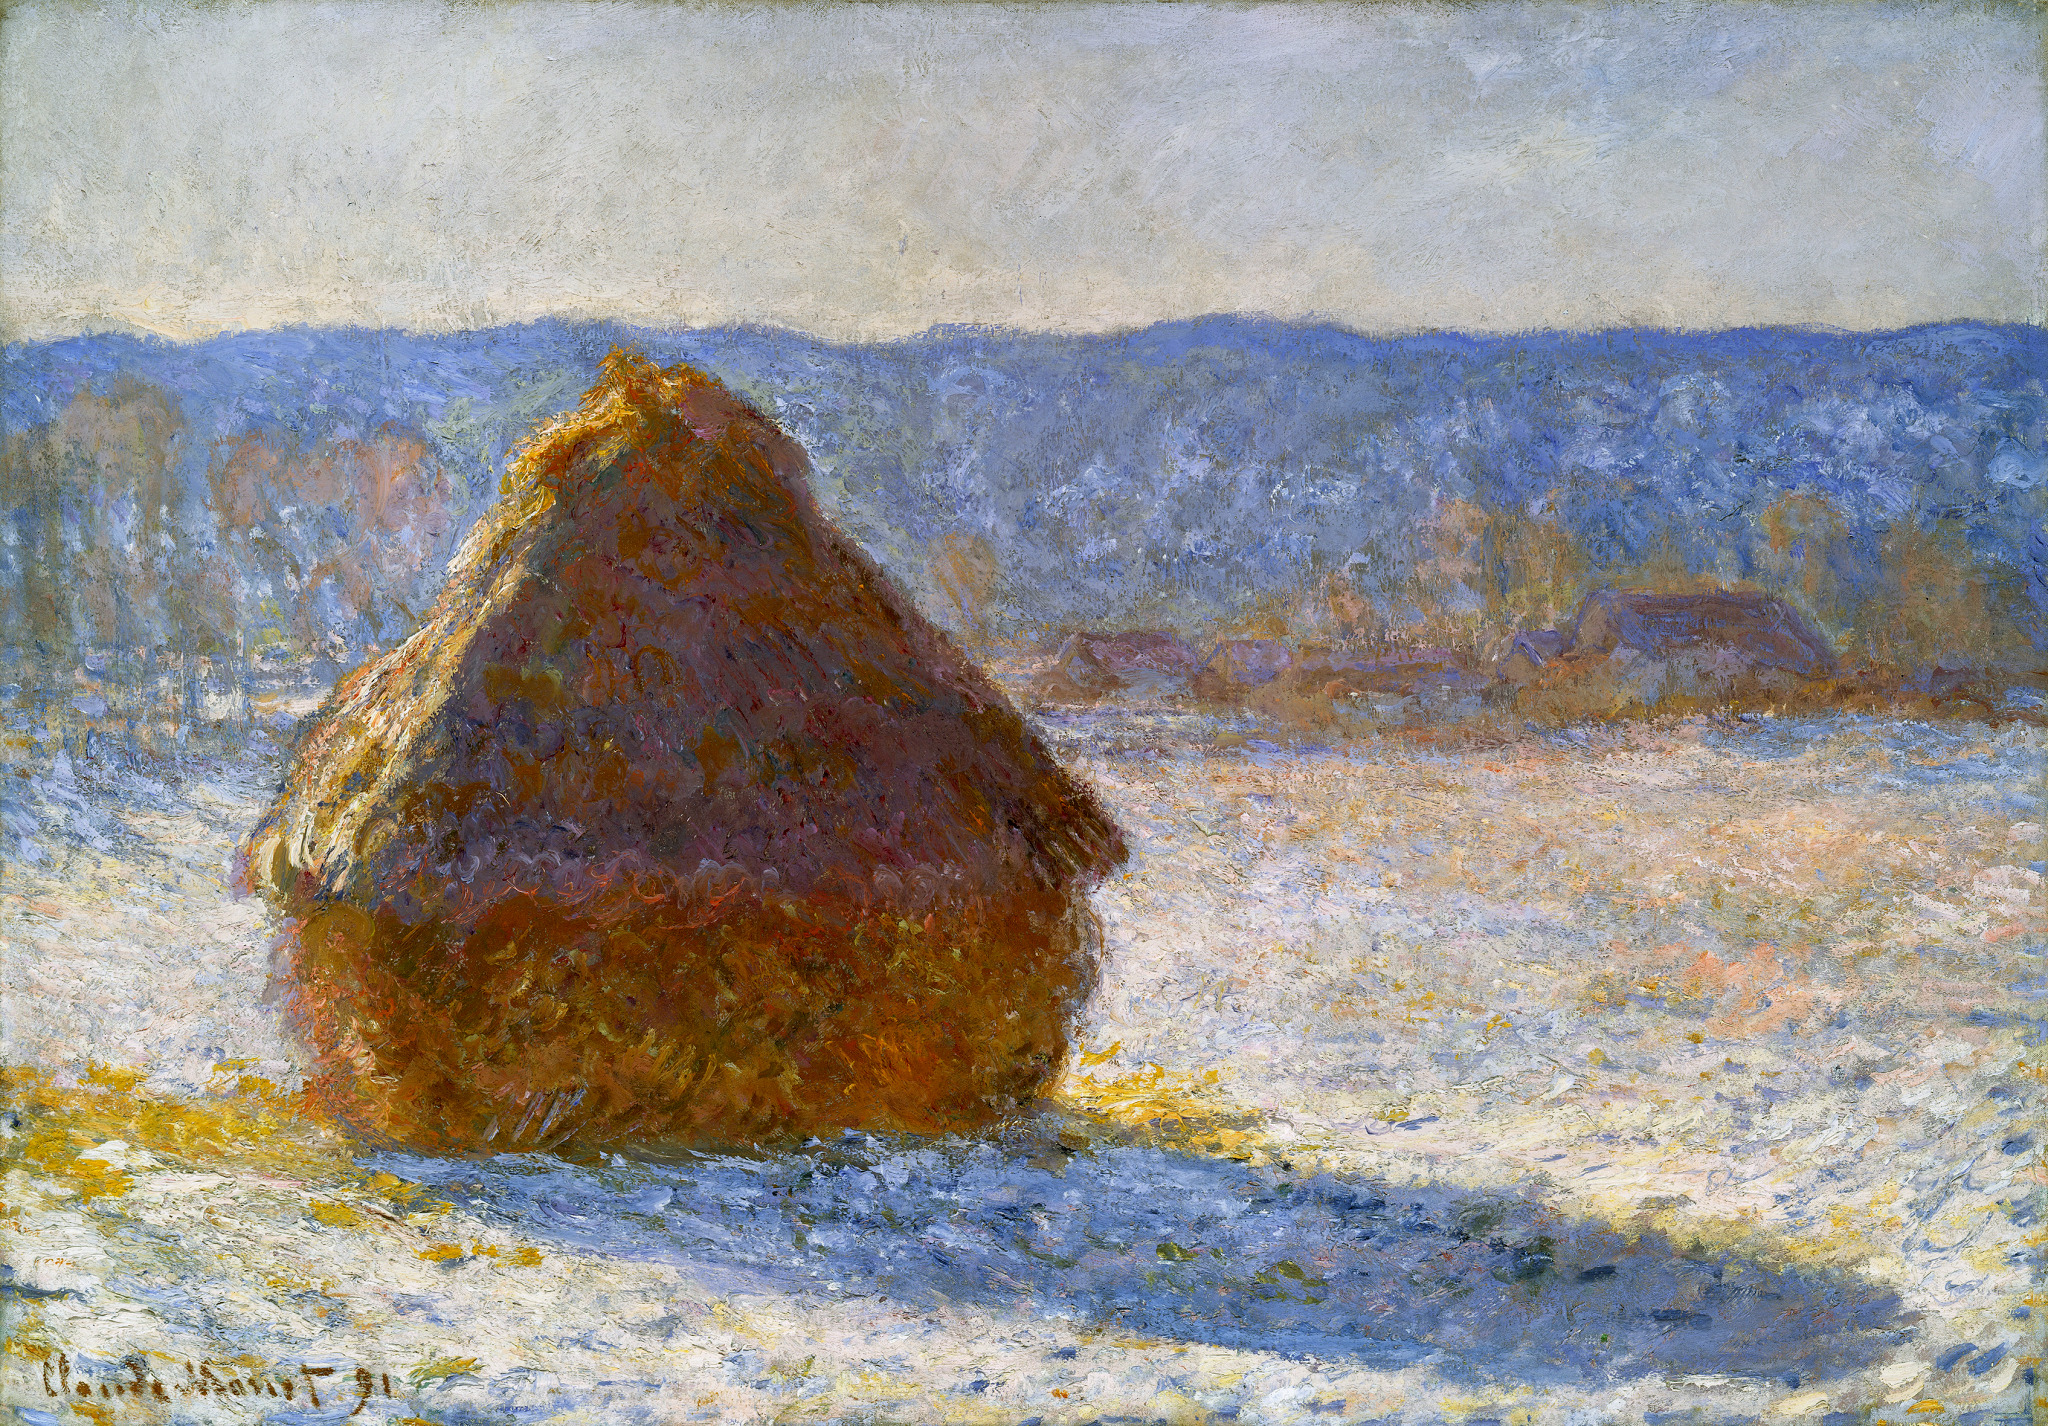 claude monet haystacks effect of snow Stacks of wheat (sunset, snow effect), 1890/91 oil on canvas 653 x 1004 cm ( 25 11/16 x 39 1/2 in) inscribed at lower right: claude monet 91 potter palmer.